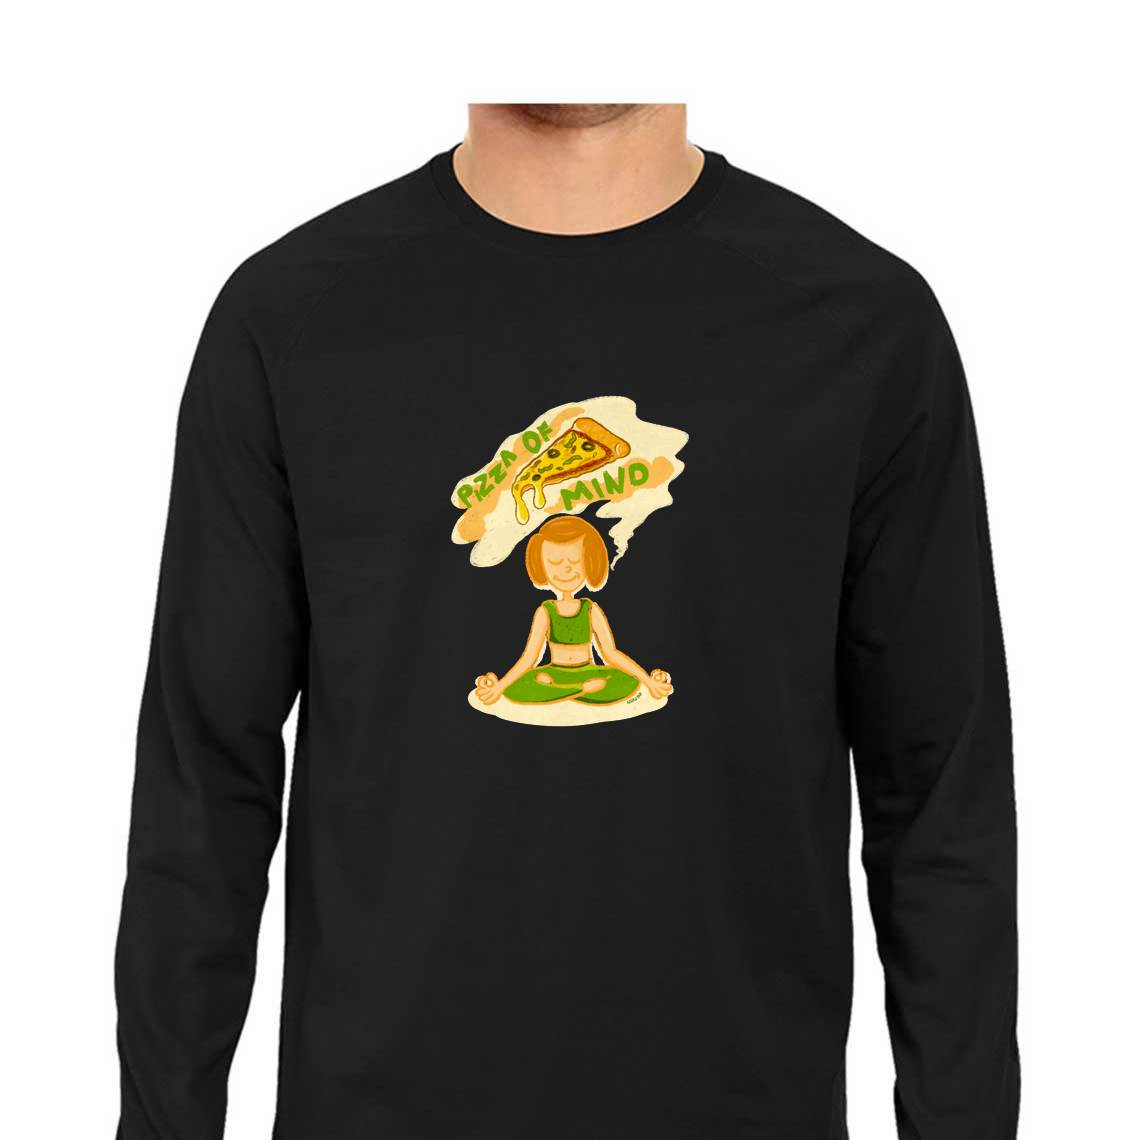 Pizza of Mind Men's Full Sleeve T Shirt - Adyatha Bhat